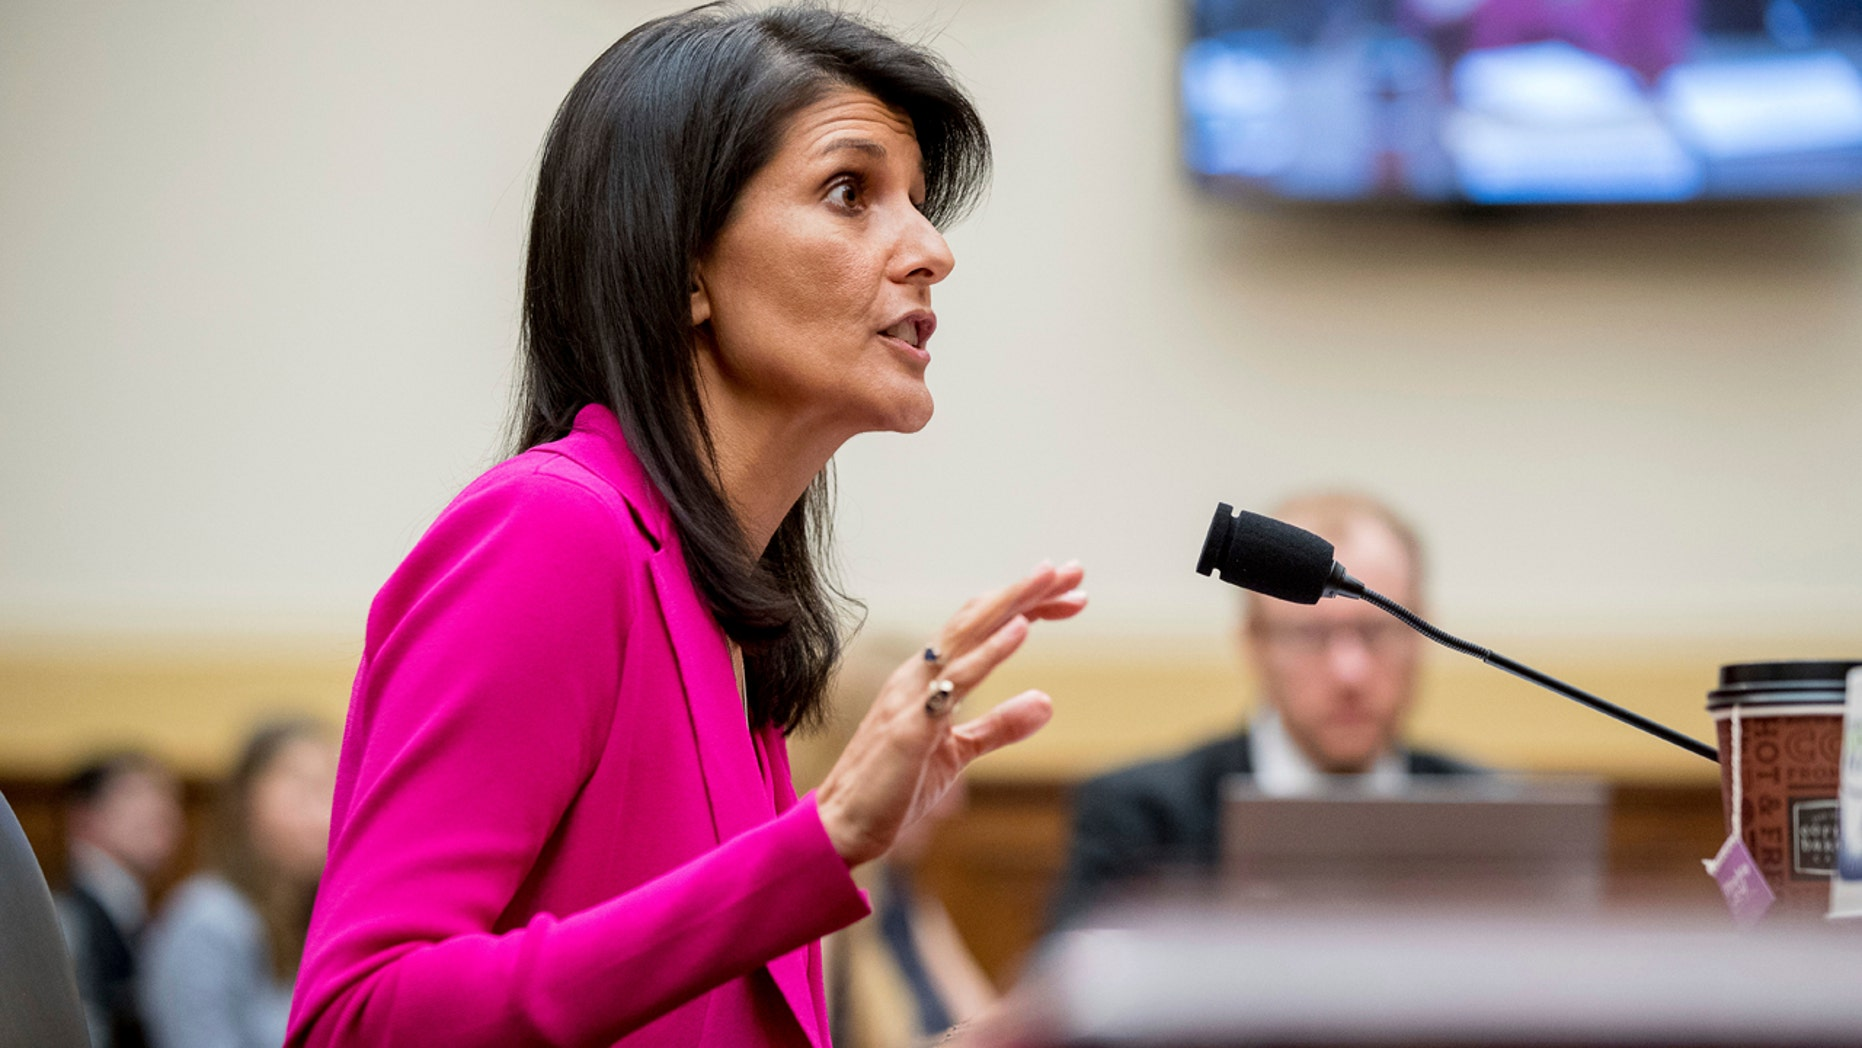 U.S. Ambassador to the UN Nikki Haley testifies on Capitol Hill in Washington, Wednesday, June 28, 2017, before the House Foreign Affairs Committee hearing: 'Advancing U.S. Interests at the United Nations'.